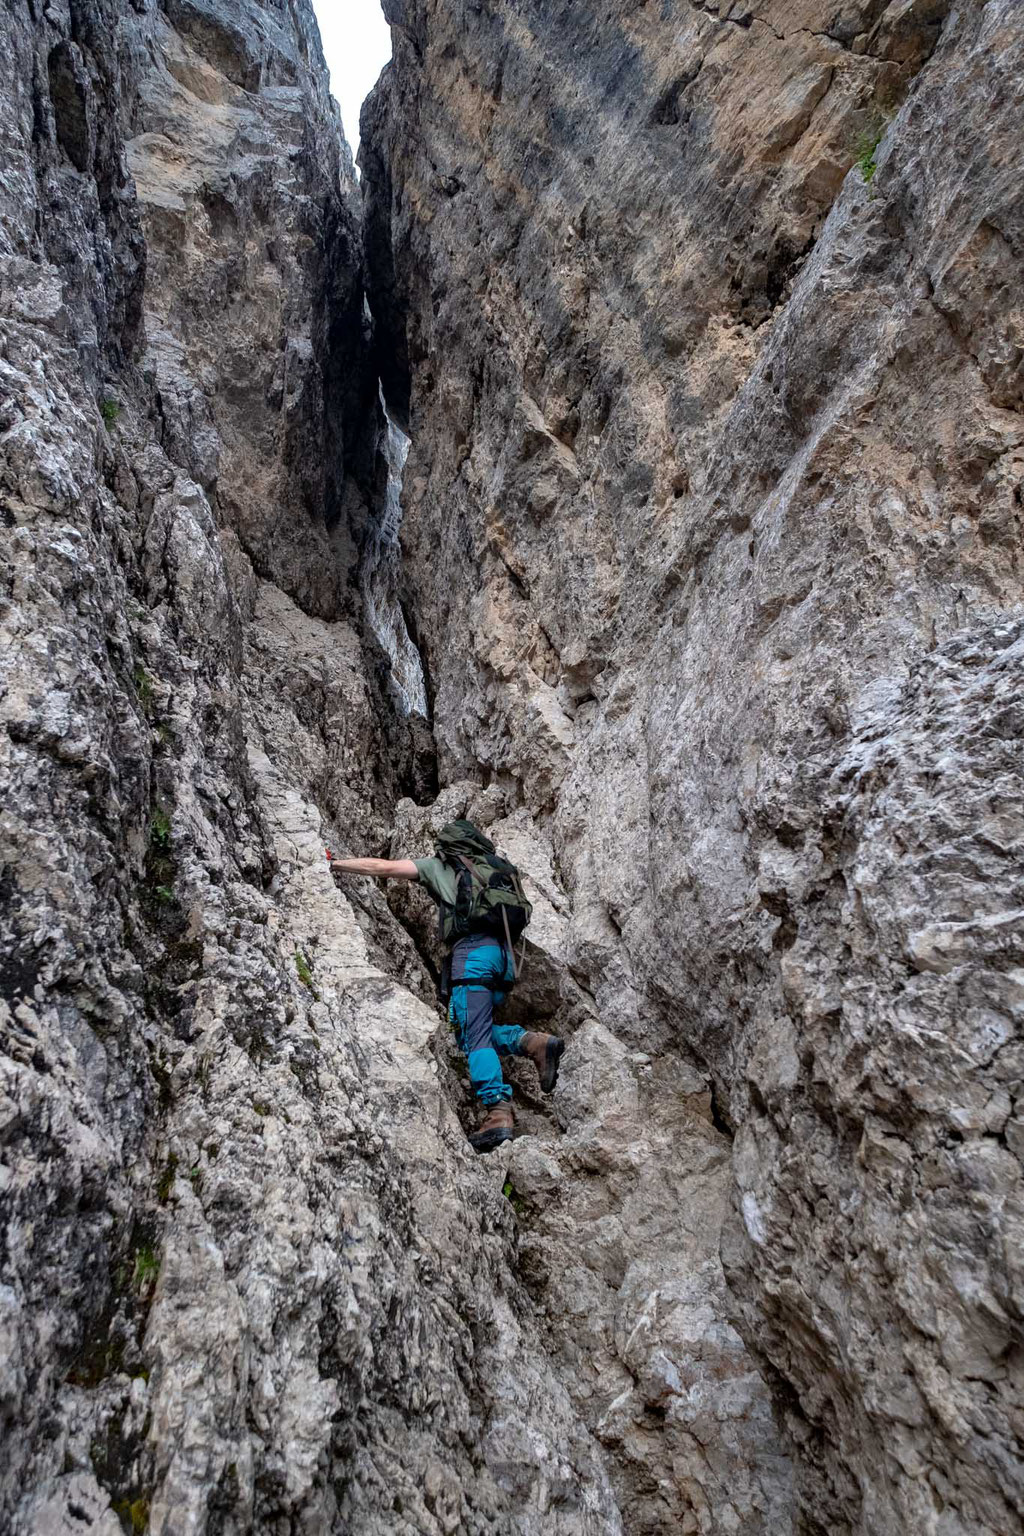 The gully where you climb unprotected